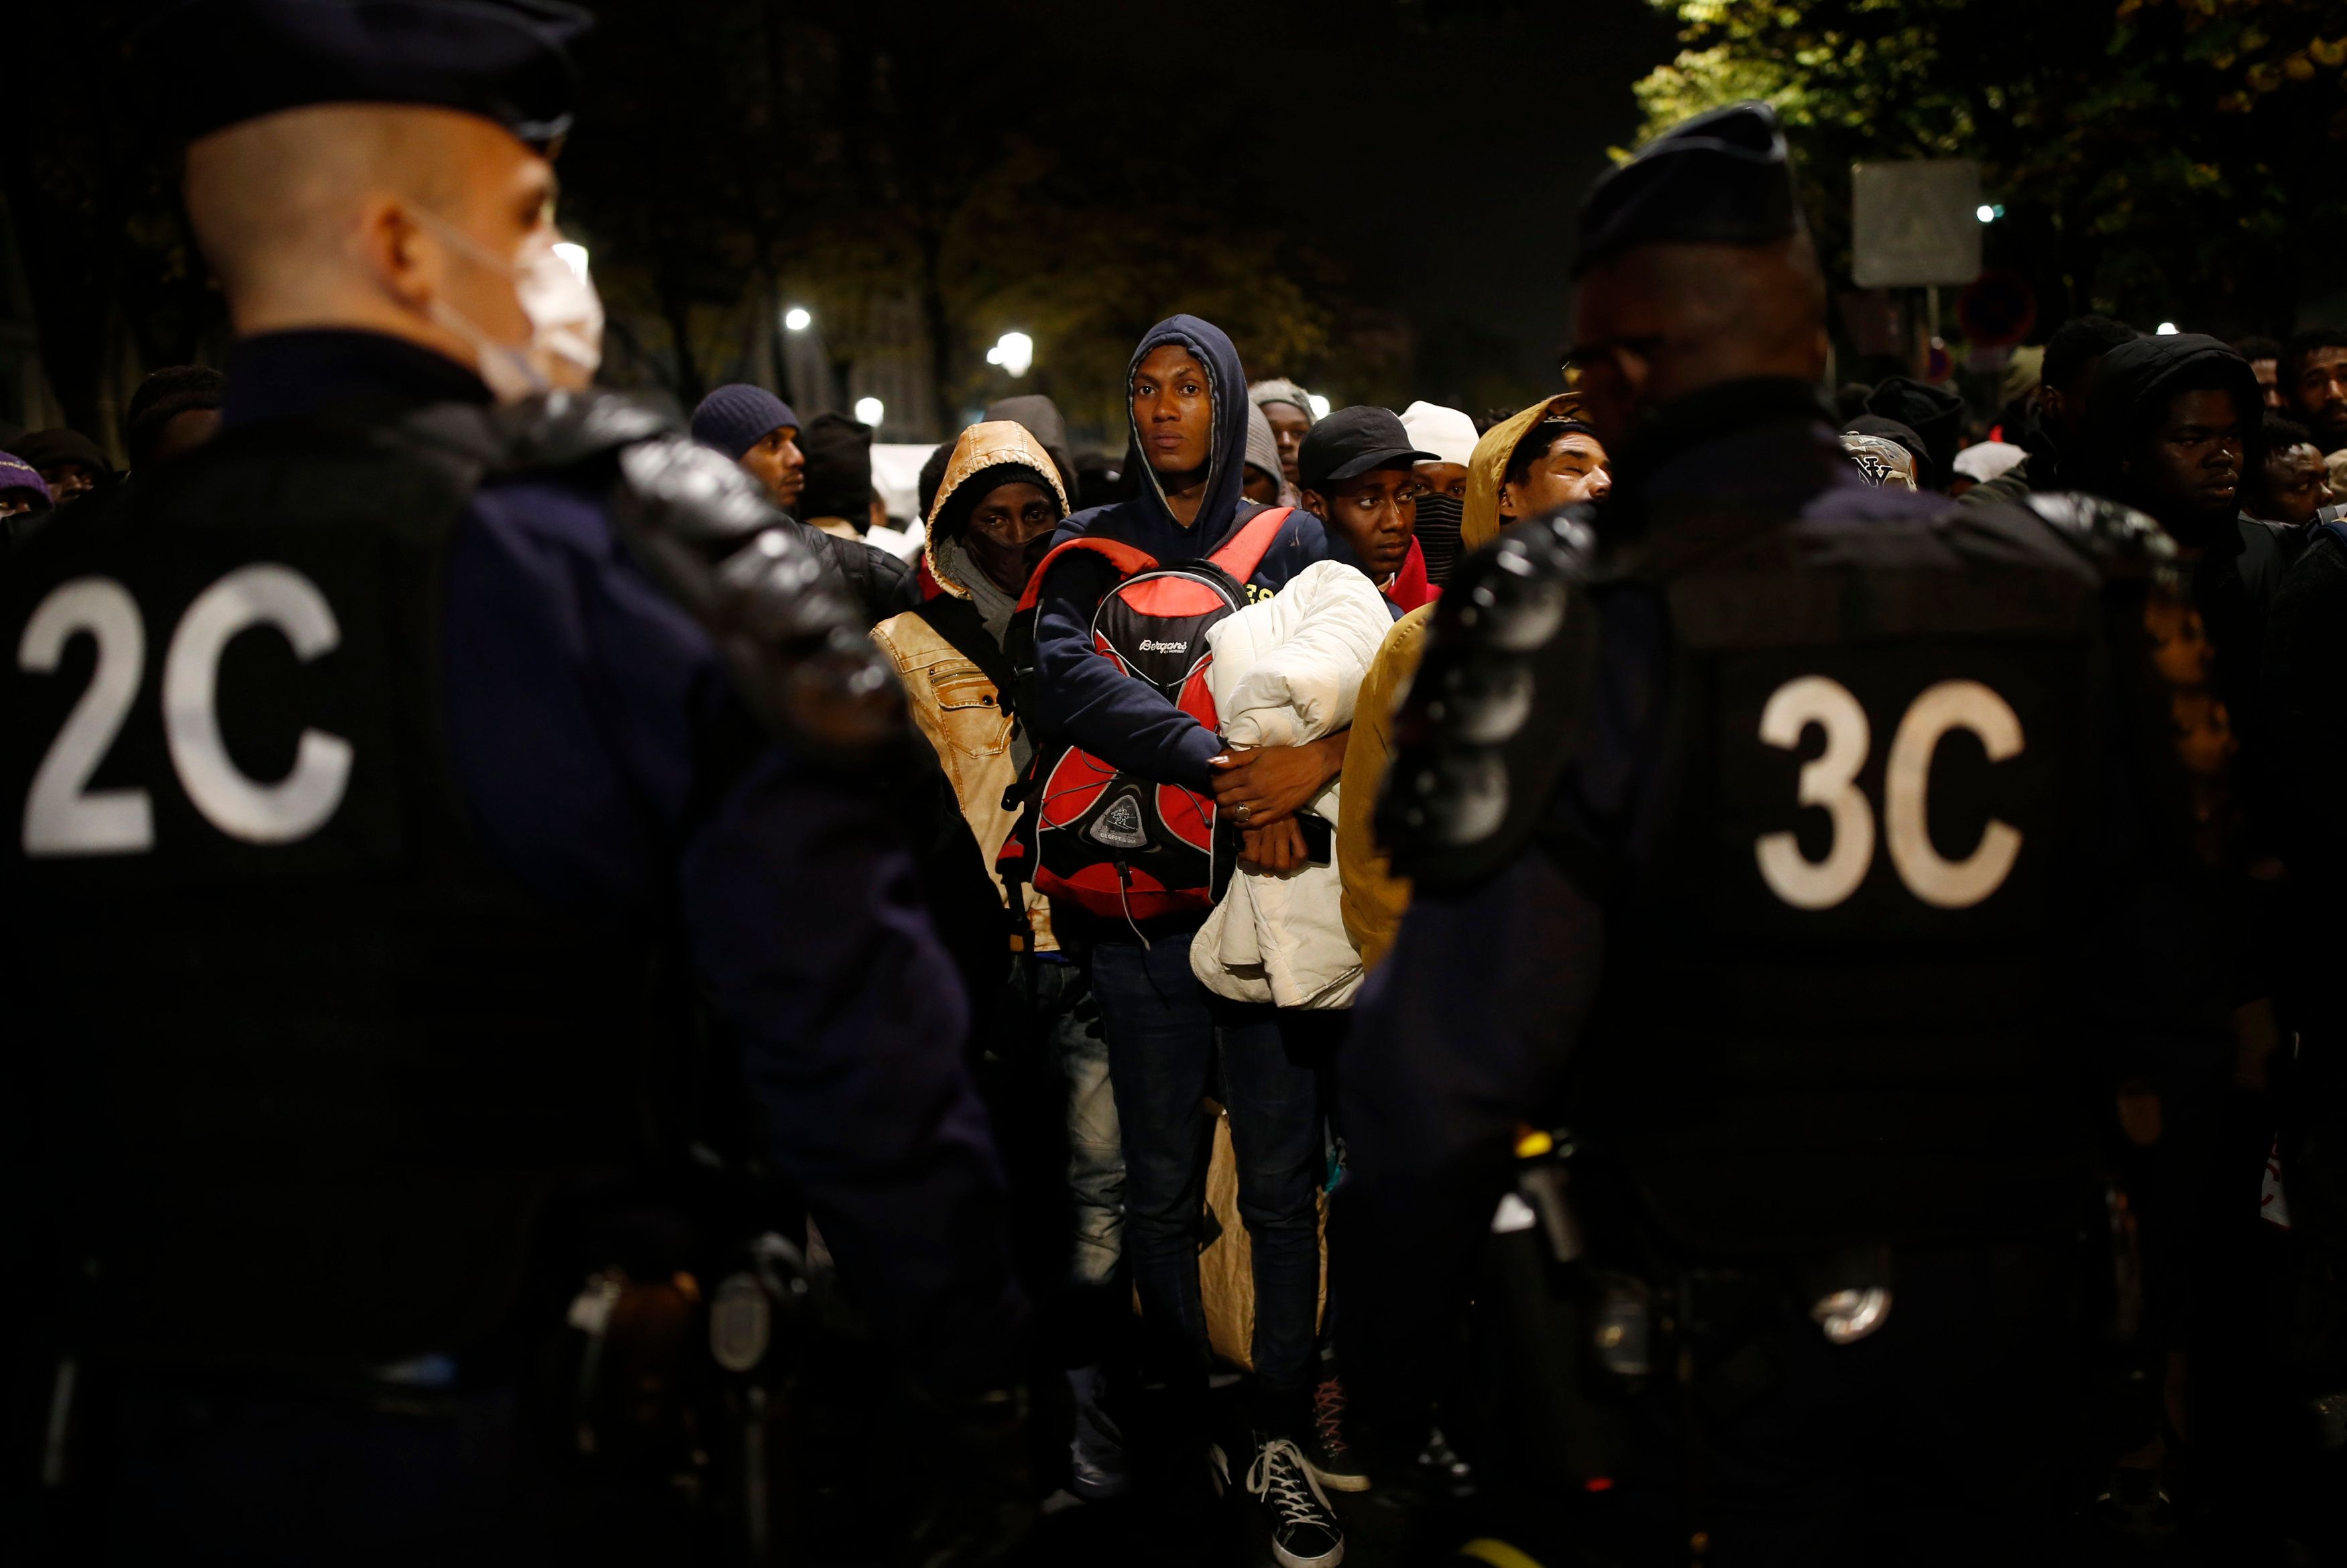 French policemoved in at daybreak, and escorted migrants to dozens of buses from the sprawl of tents and mattresses&nbs